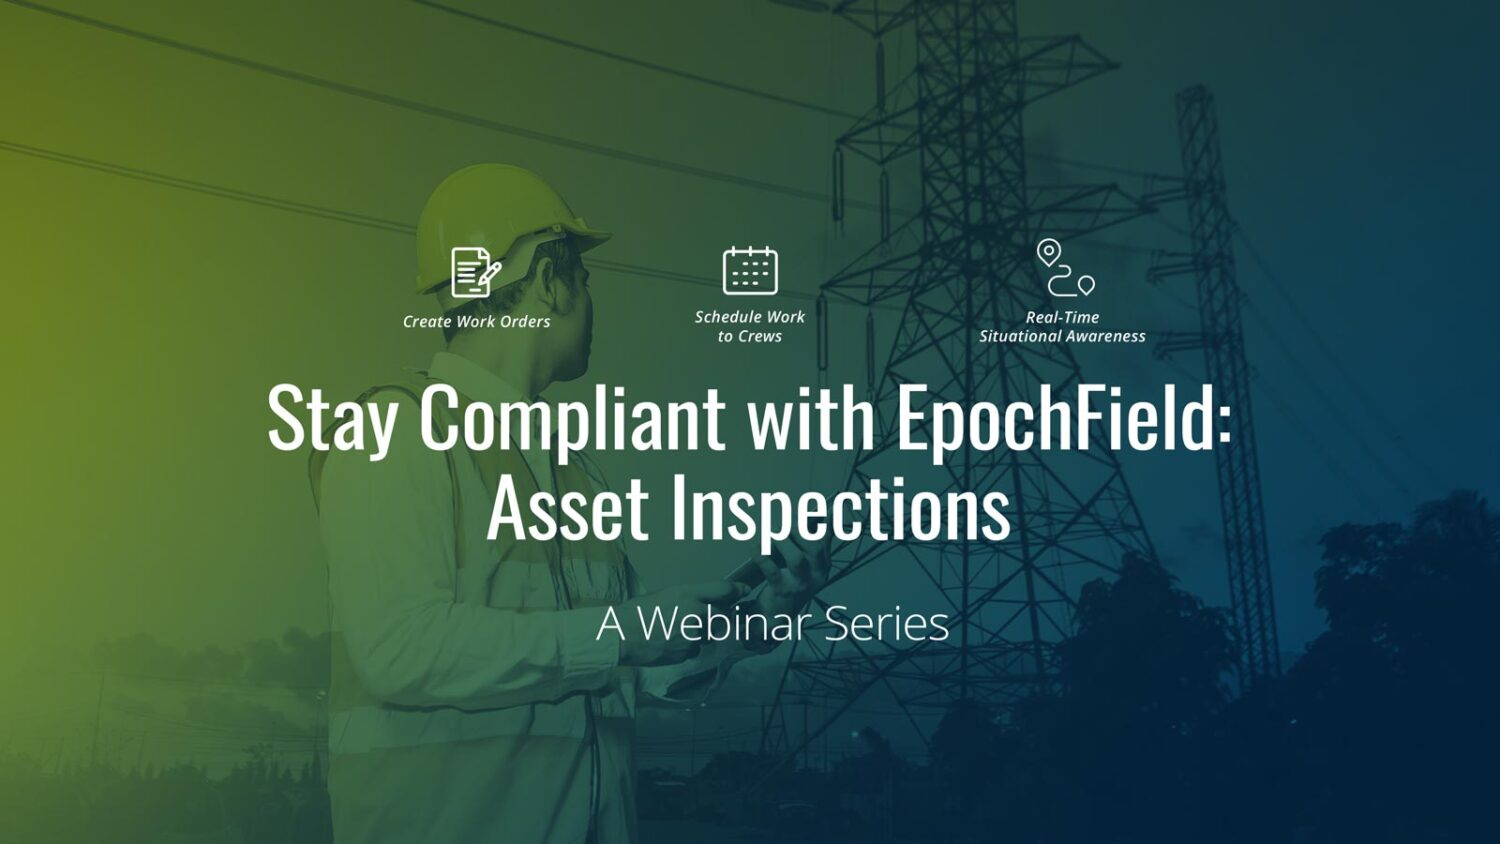 Stay Compliant with EpochField: Asset Inspections